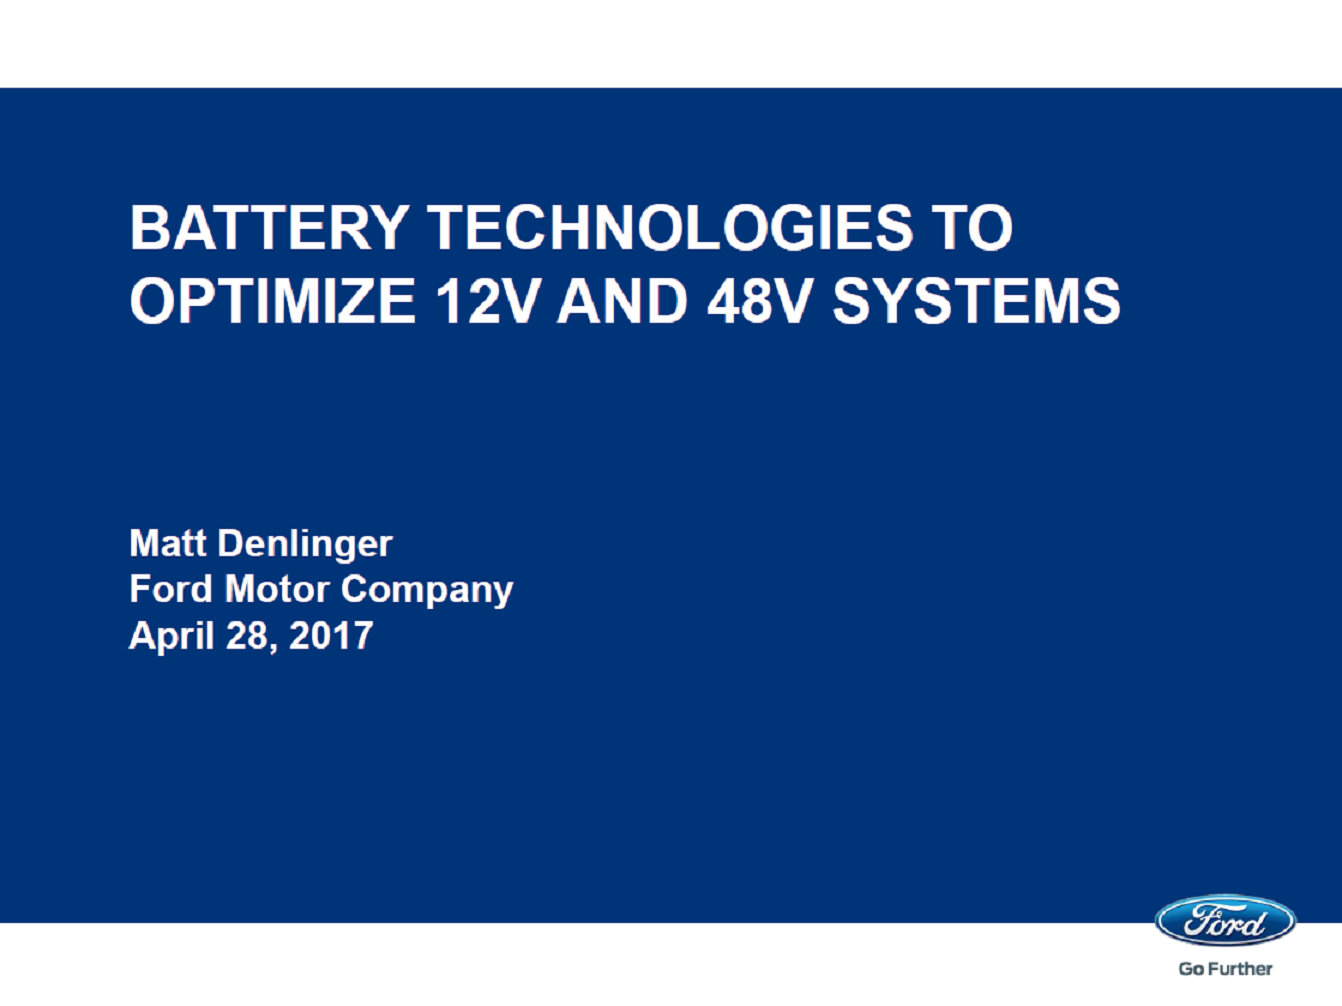 Advanced Energy Storage Solutions: Batteries Technologies To Optimize 12V And 48V Systems